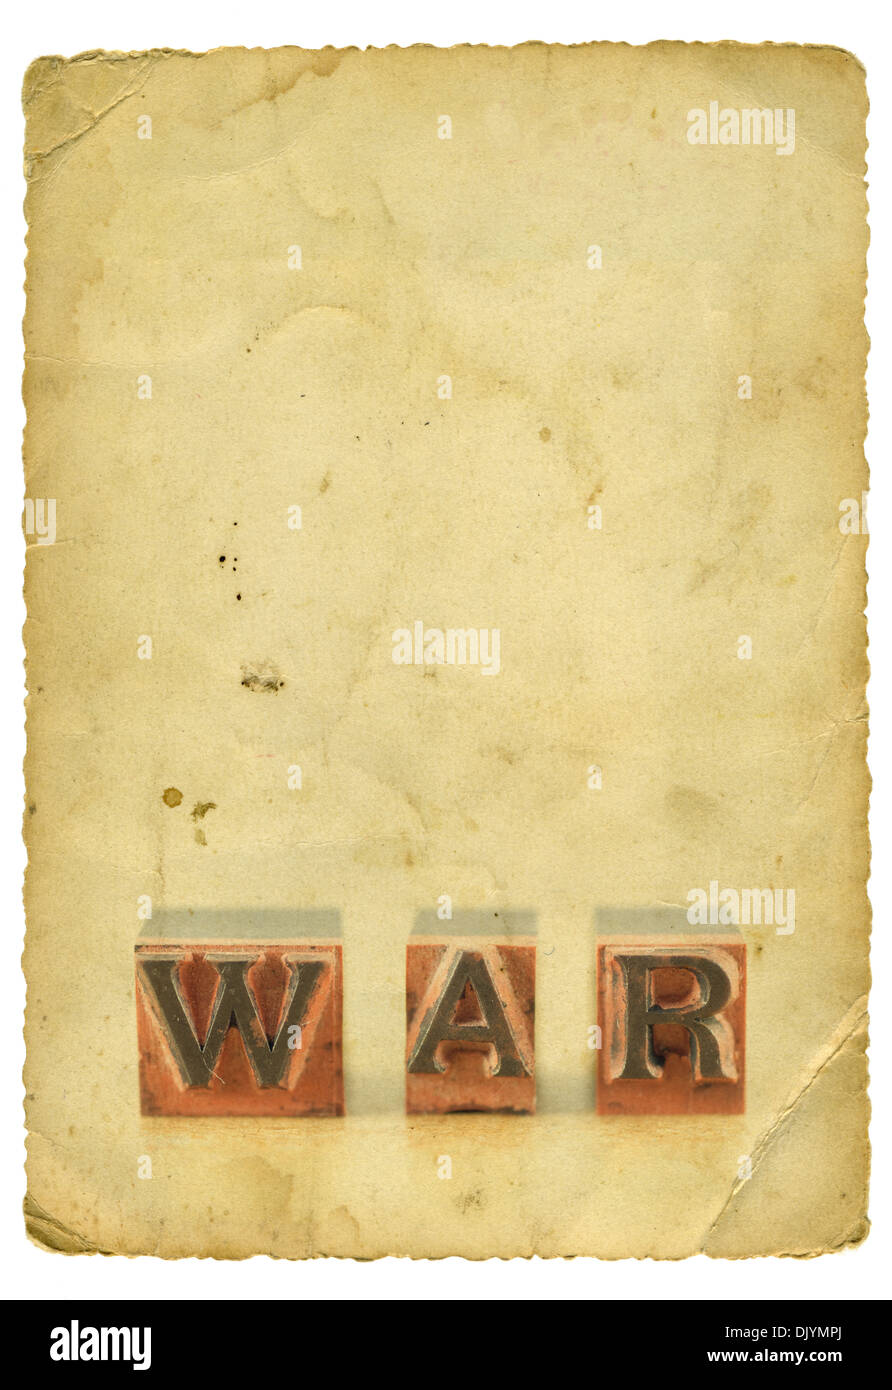 Background image word - Stock Photo Word War Spelled Out In Letterpress Letters On Old Paper Background